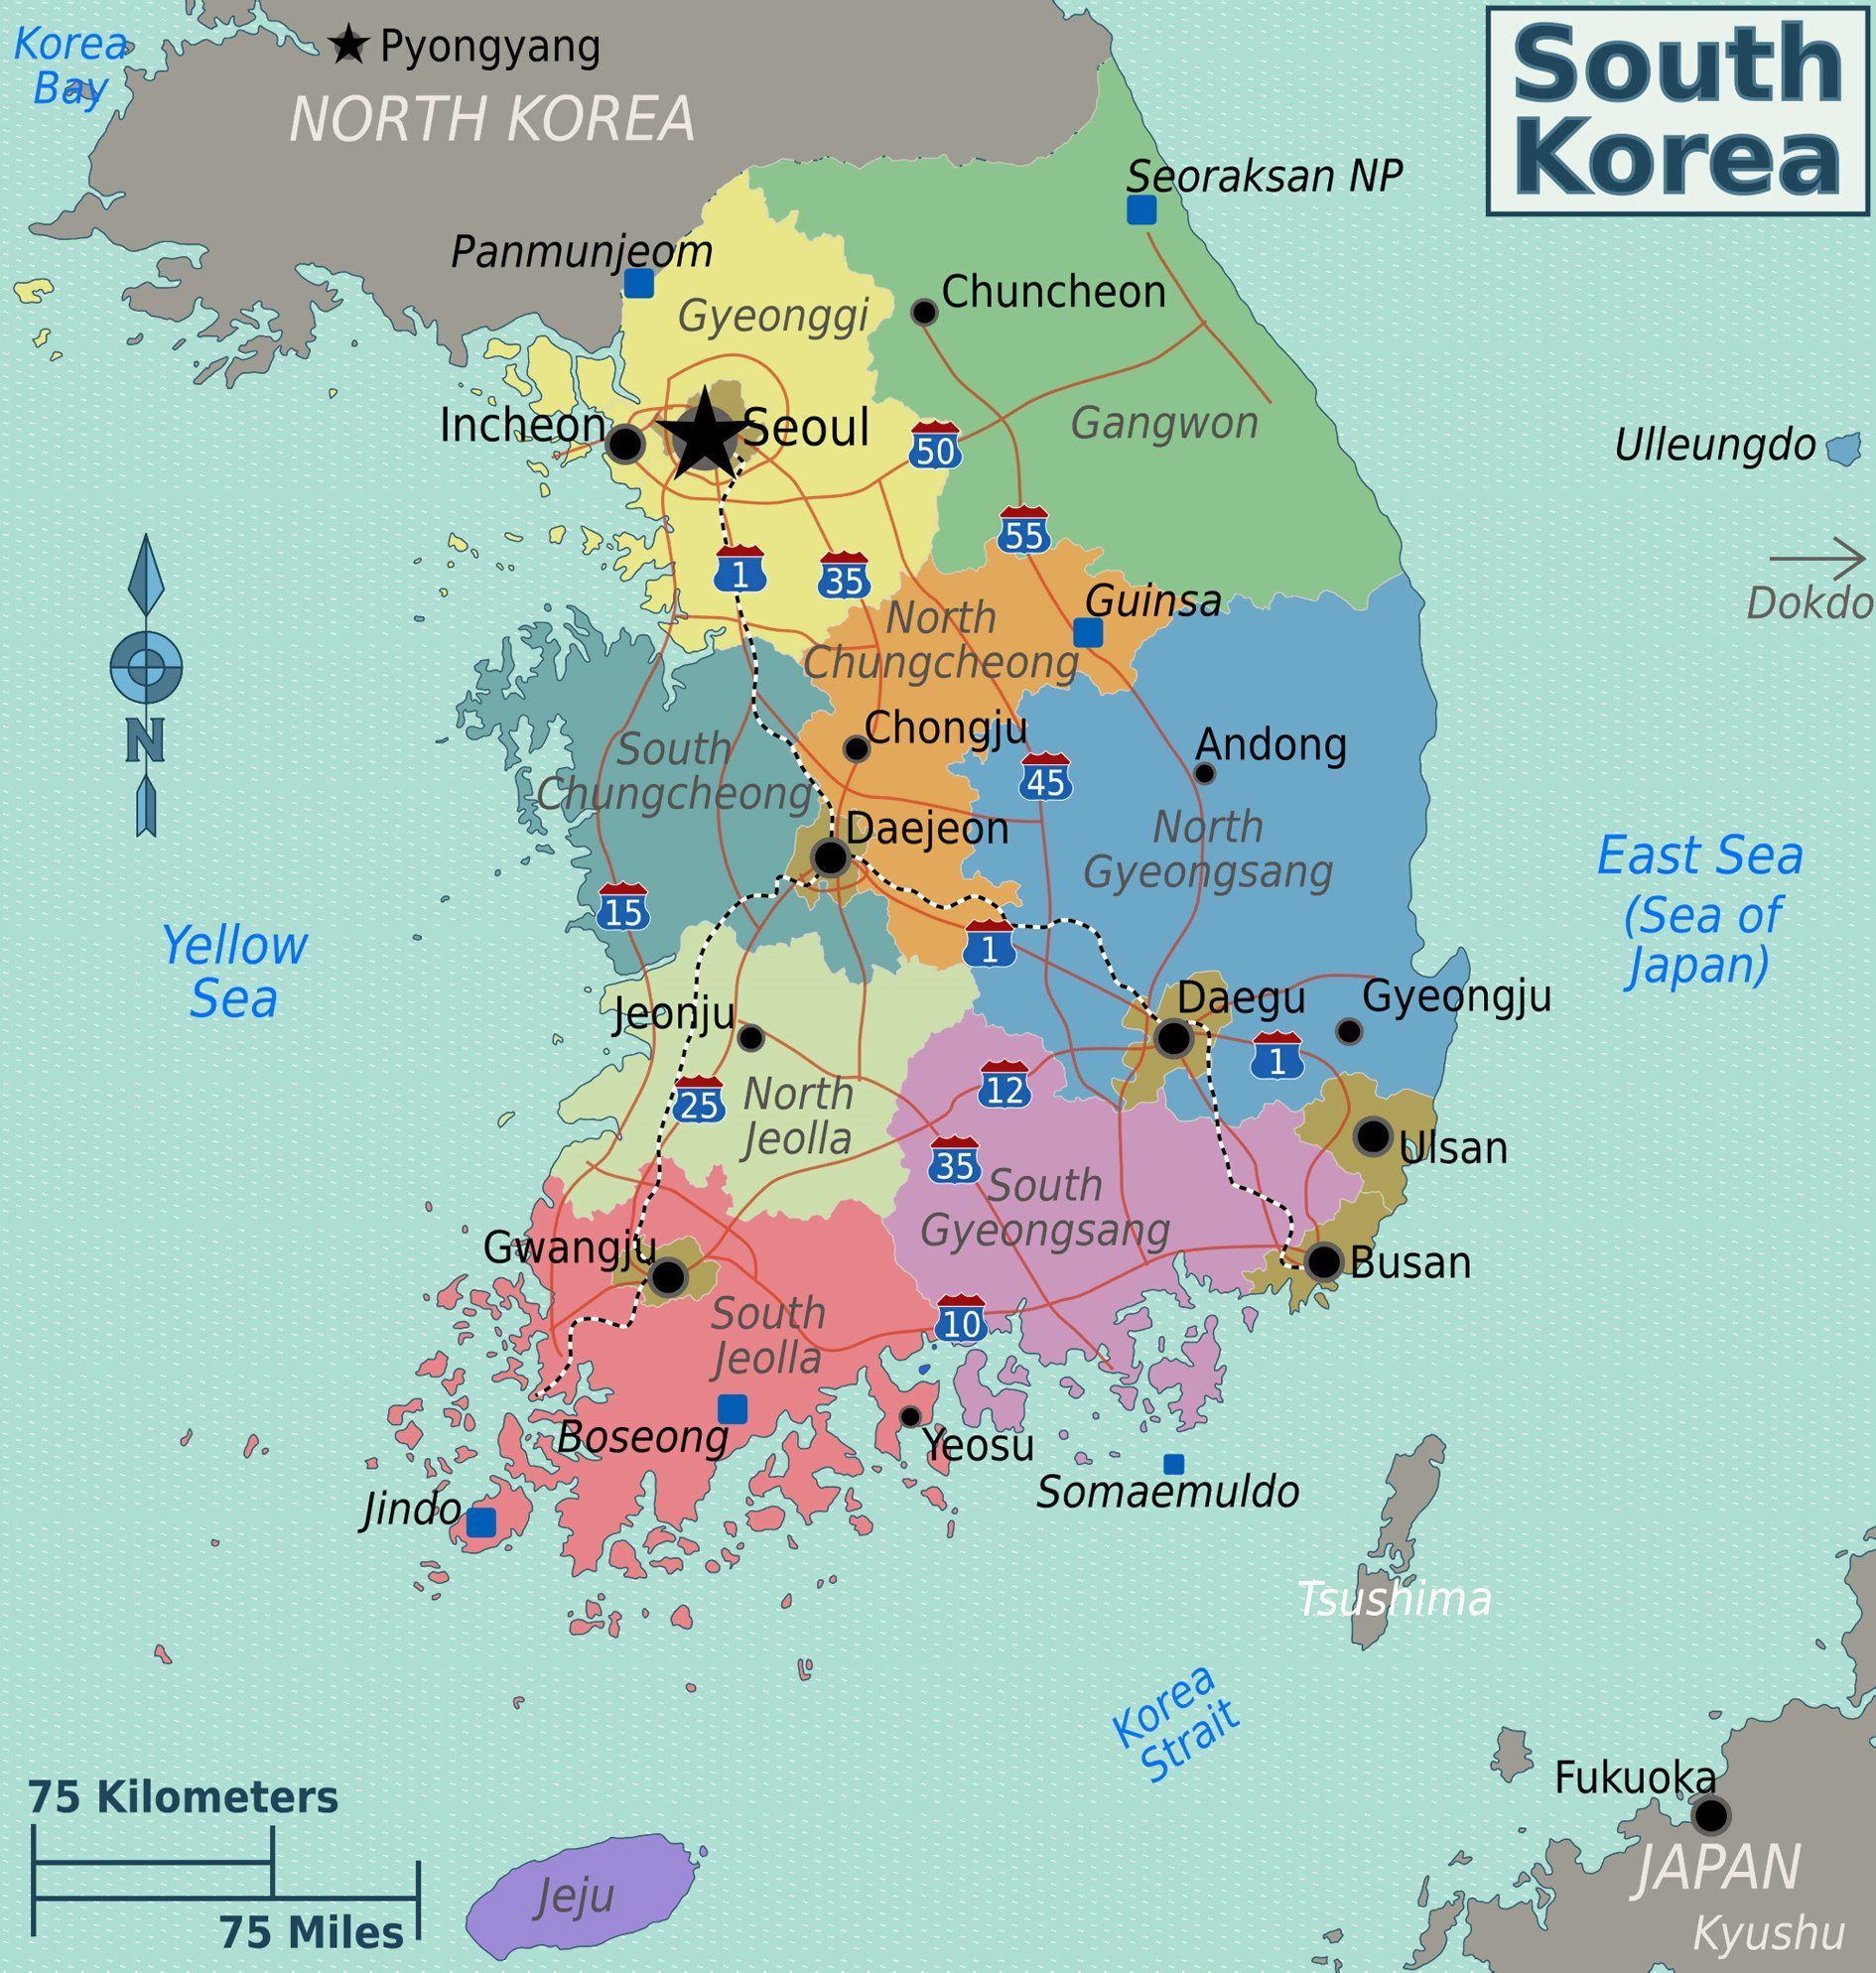 South Korea Maps | Printable Maps of South Korea for Download on a map of the u, a map of the florida keys, a map of the european countries, a map of soviet union, a map of the far east, a map of estonia, a map of japan, a map of vietnam, a map of the pentagon, a map of moldova, a map of indonesia, a map of vanuatu, a map of andorra, a map of anguilla, a map of seychelles, a map of other country, a map of korean war, a map of the united, a map of u.s.a, a map of tuvalu,